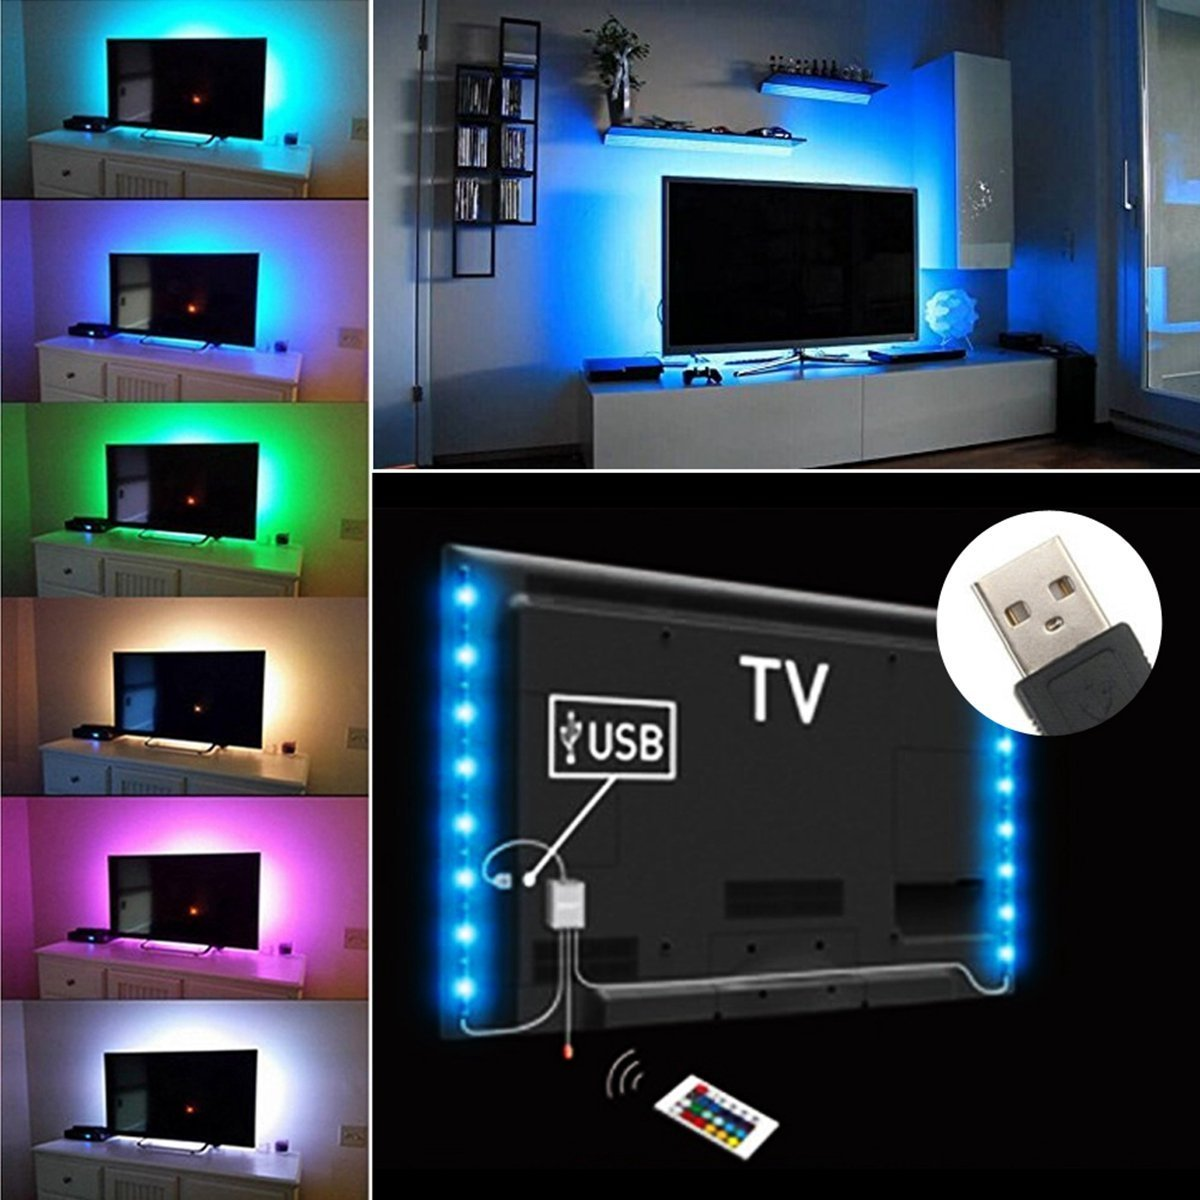 RGB TV Backlight Kit USB LED Strip Light Neon Accent Bias Lighting with 24keys Remote Controller for 24 to 65inch HDTV LCD Desktop PC Monitor (Set of 2) by YZLED (Image #2)